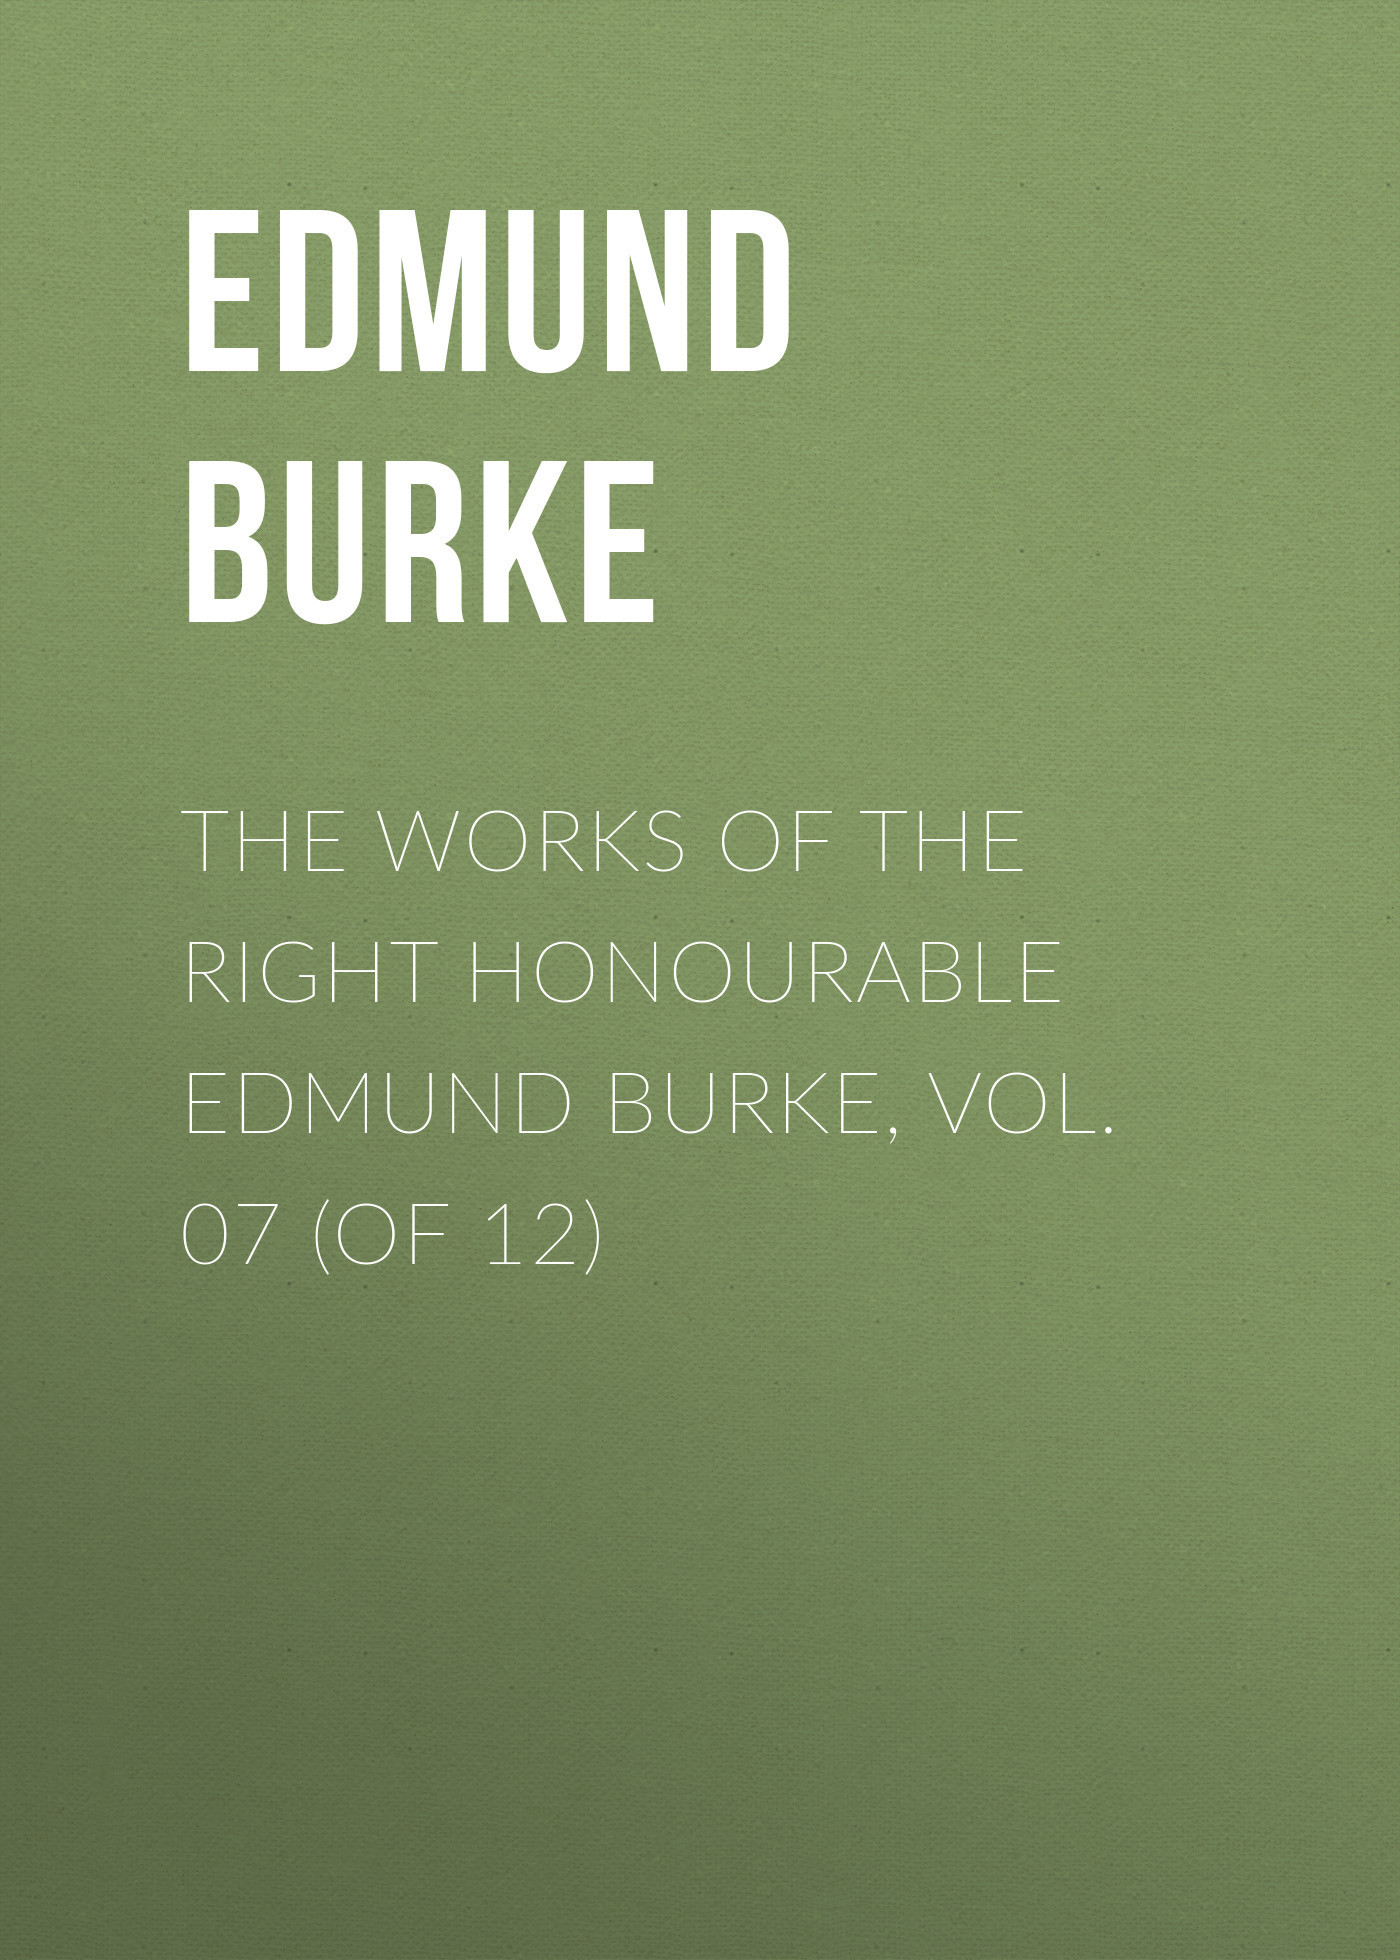 Edmund Burke The Works of the Right Honourable Edmund Burke, Vol. 07 (of 12) edmund burke the works of the right honourable edmund burke vol 09 of 12